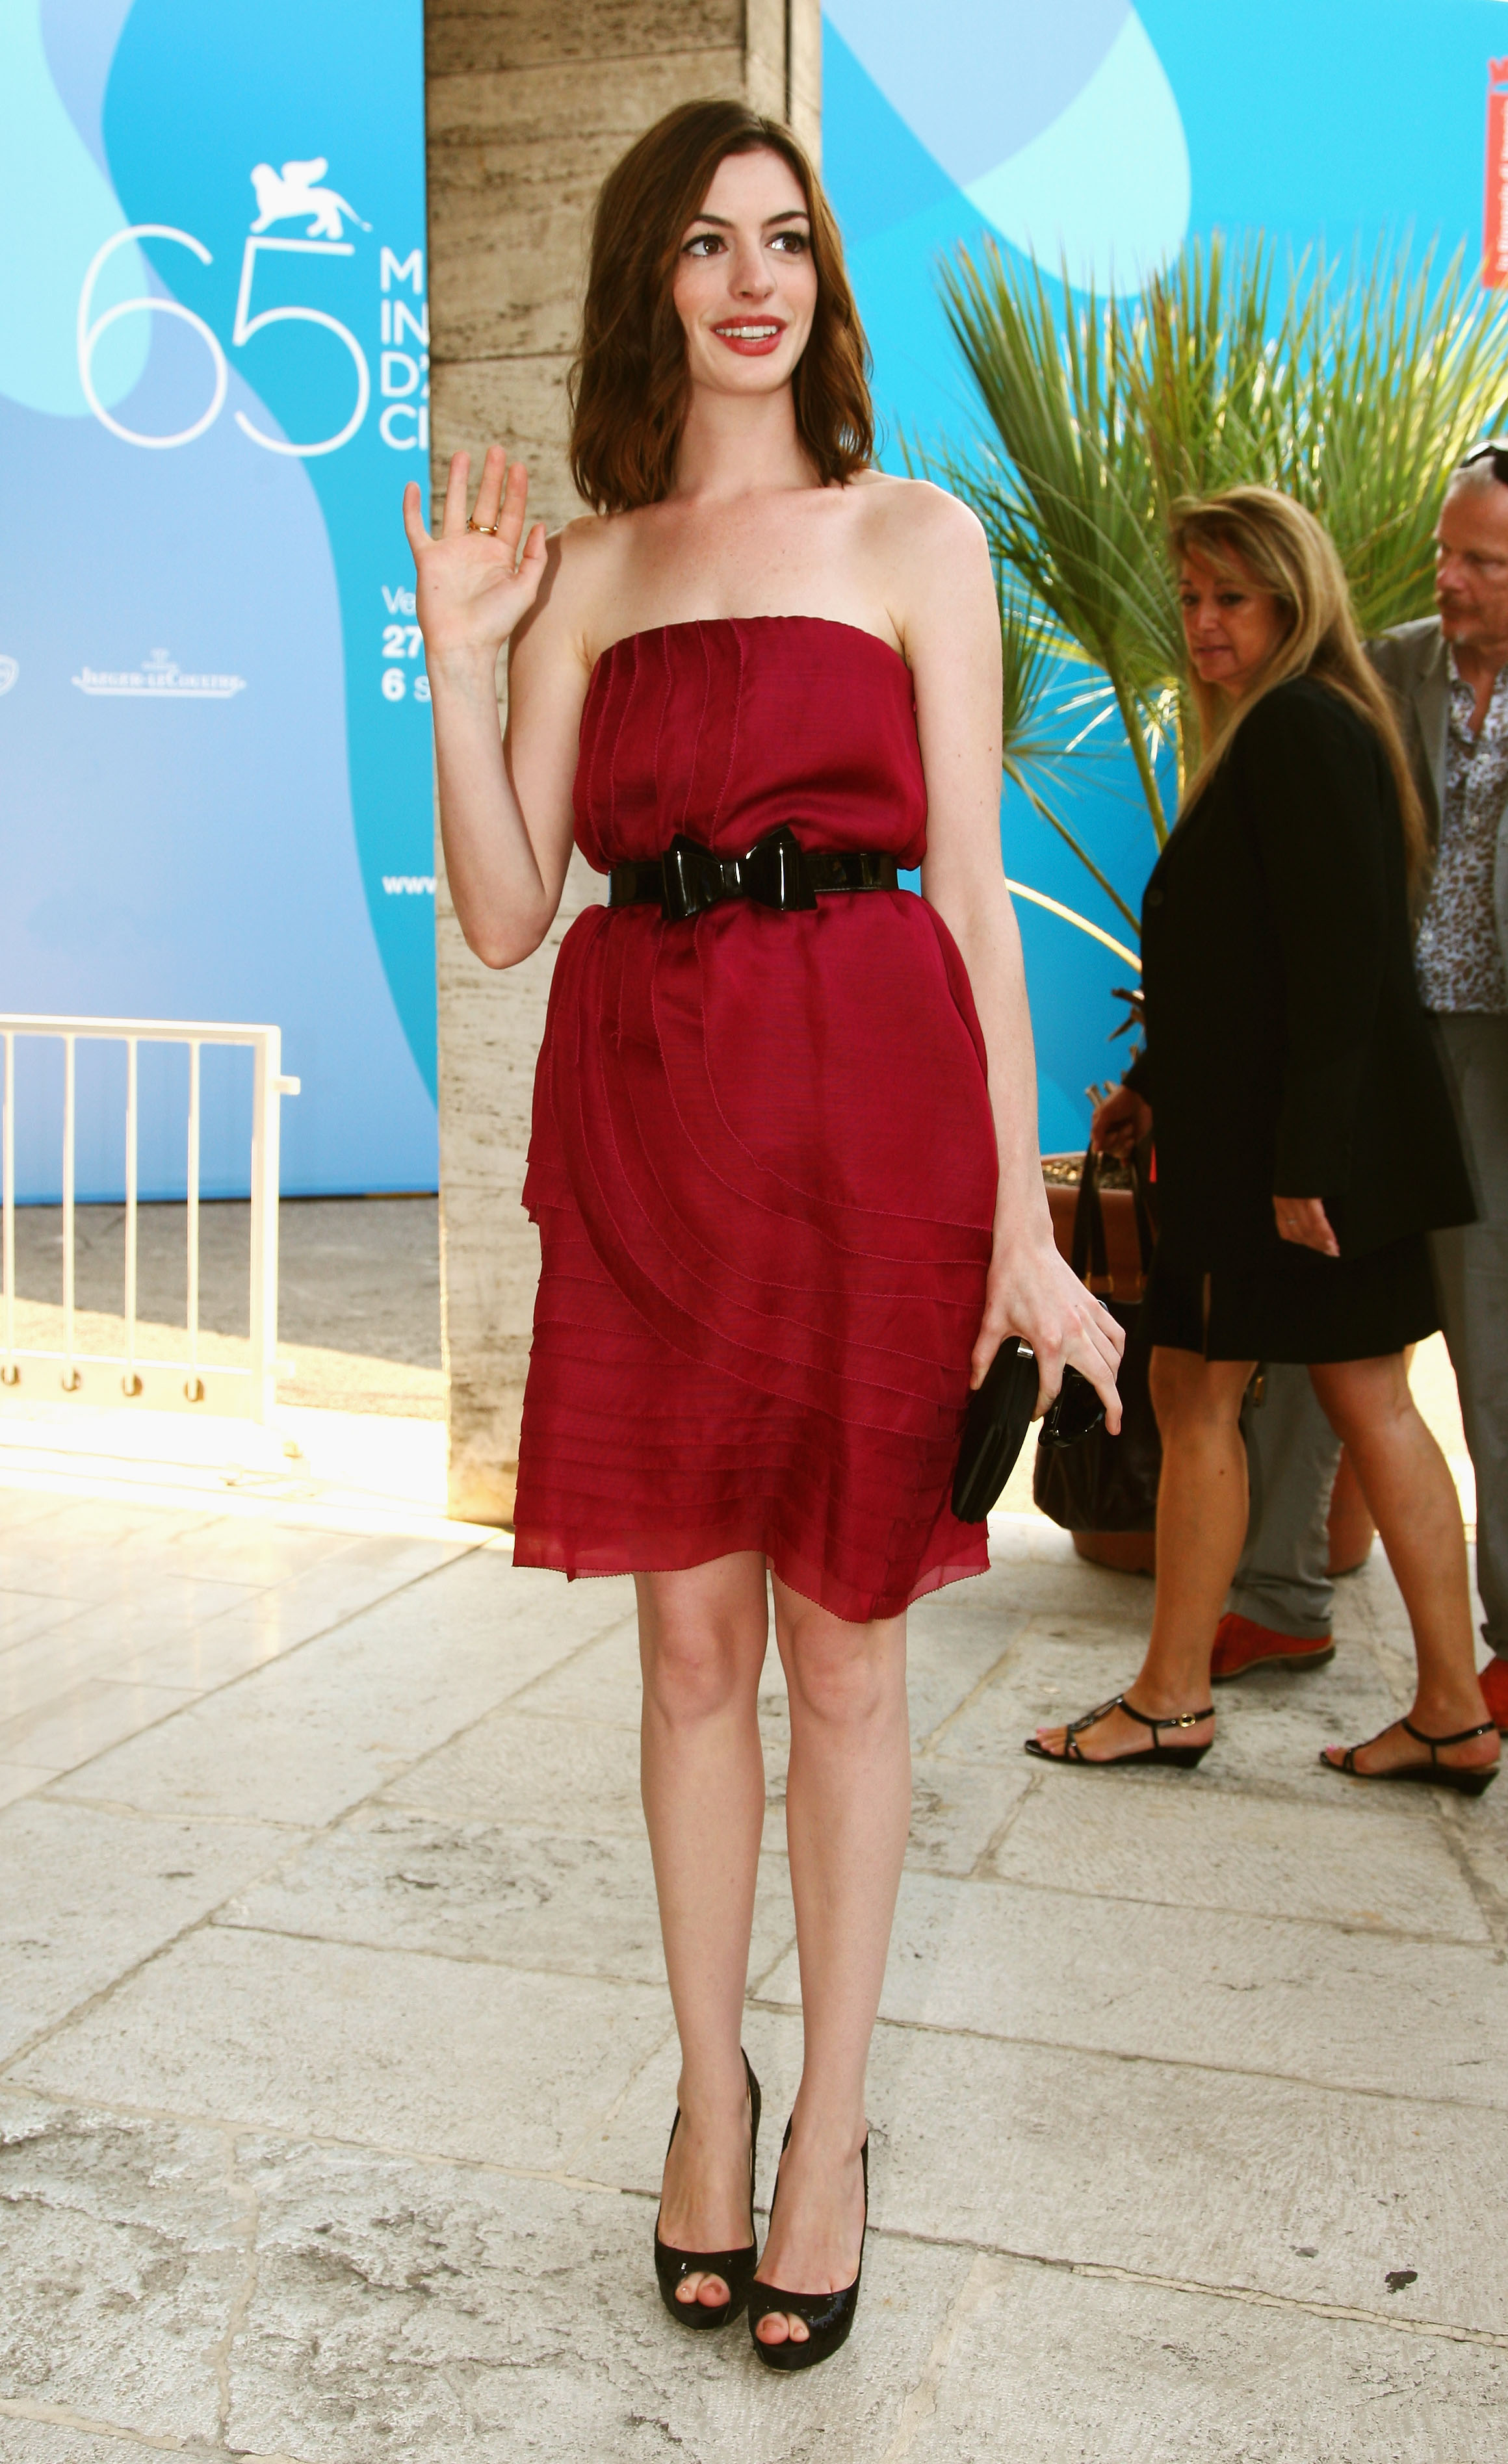 39281_Celebutopia-Anne_Hathaway_arrives_at_the_Excelsior_Hotel_during_the_65th_Venice_Film_Festival-18_122_1195lo.jpg